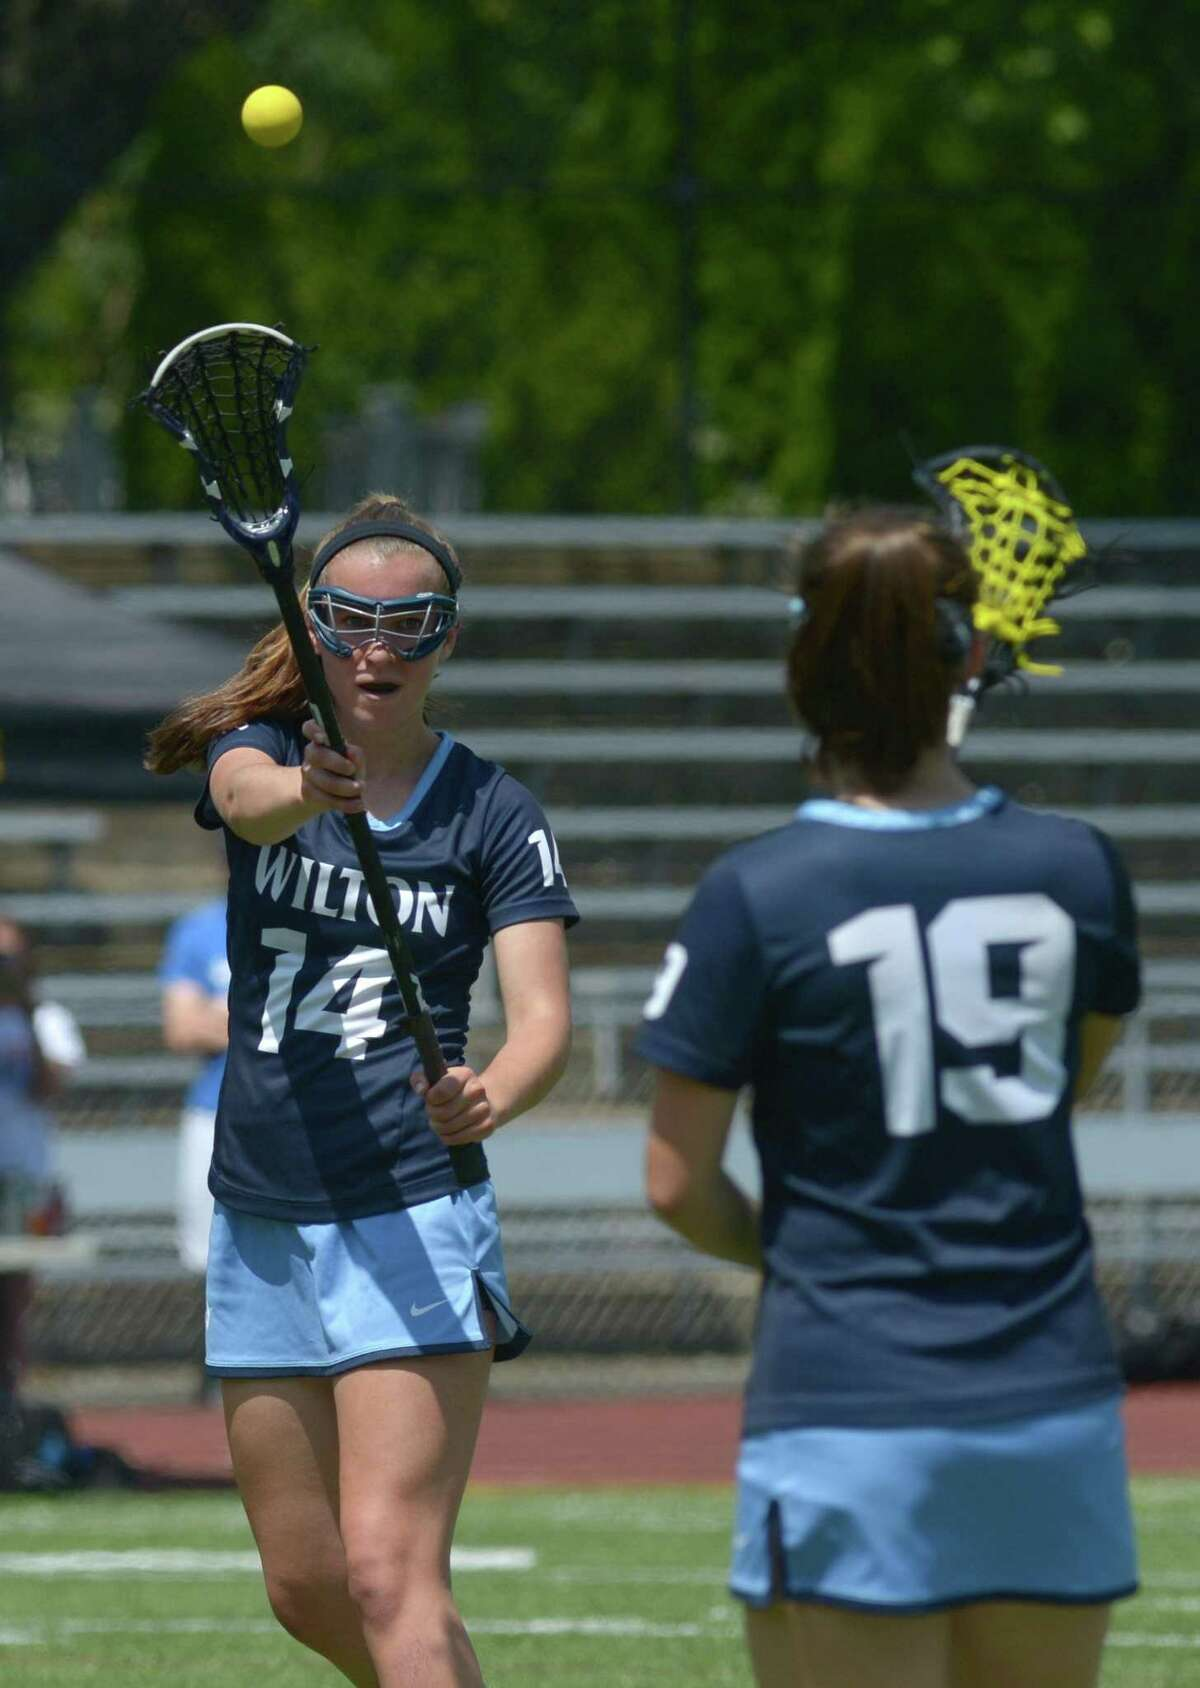 #14 of Wilton High School Carly Sullivan passes to #19 Sophie Sudaro Darien High School takes on Wilton in their Class L Girls Lacrosse championship Saturday, June, 10, 2017, at Jonathan Law High School in Milford, Conn.